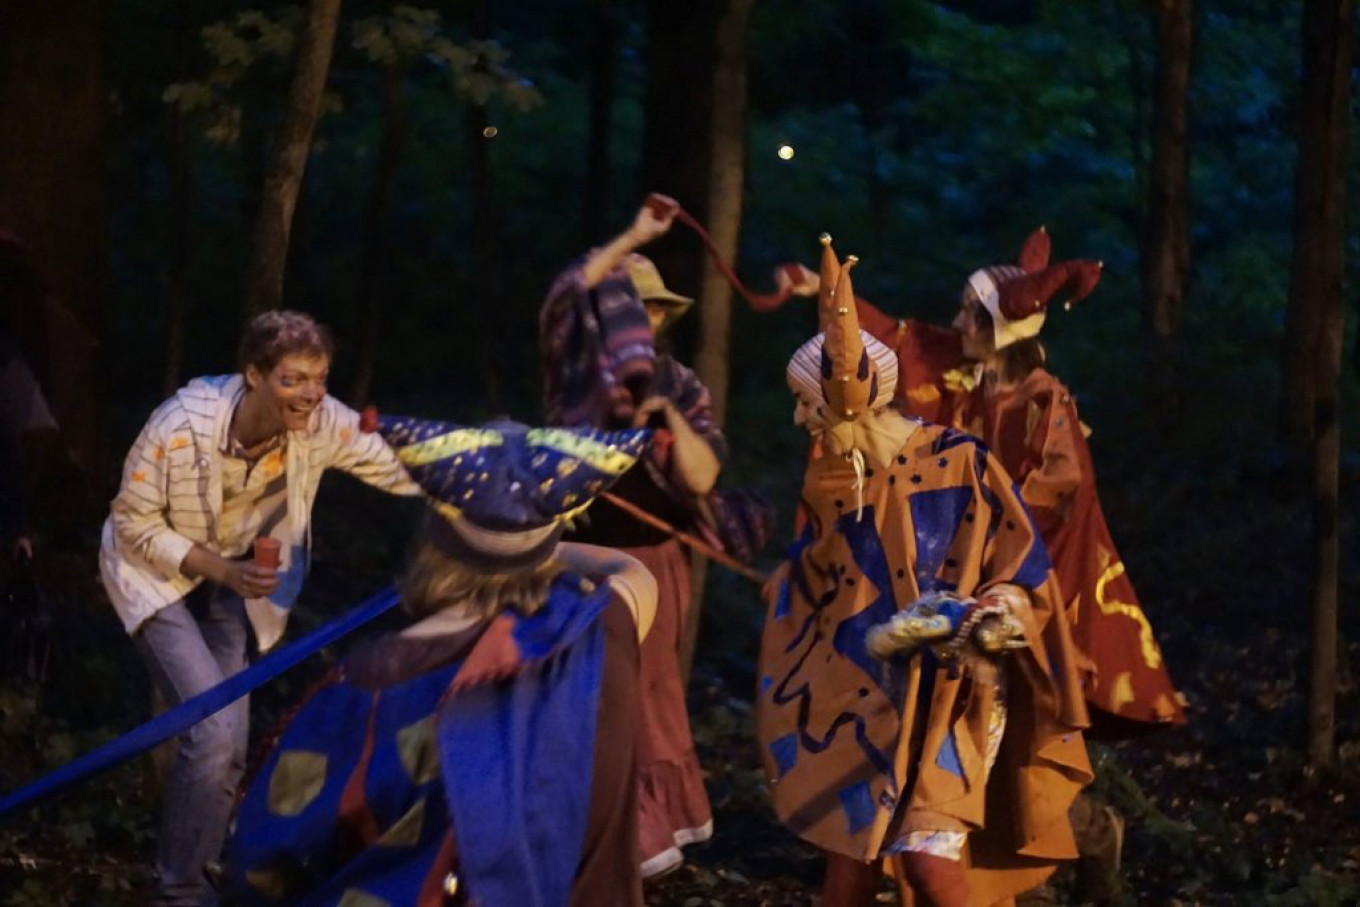 Some of the Argentinian folklore in Moscow this Saturday. Argentina-in-Russia Festival